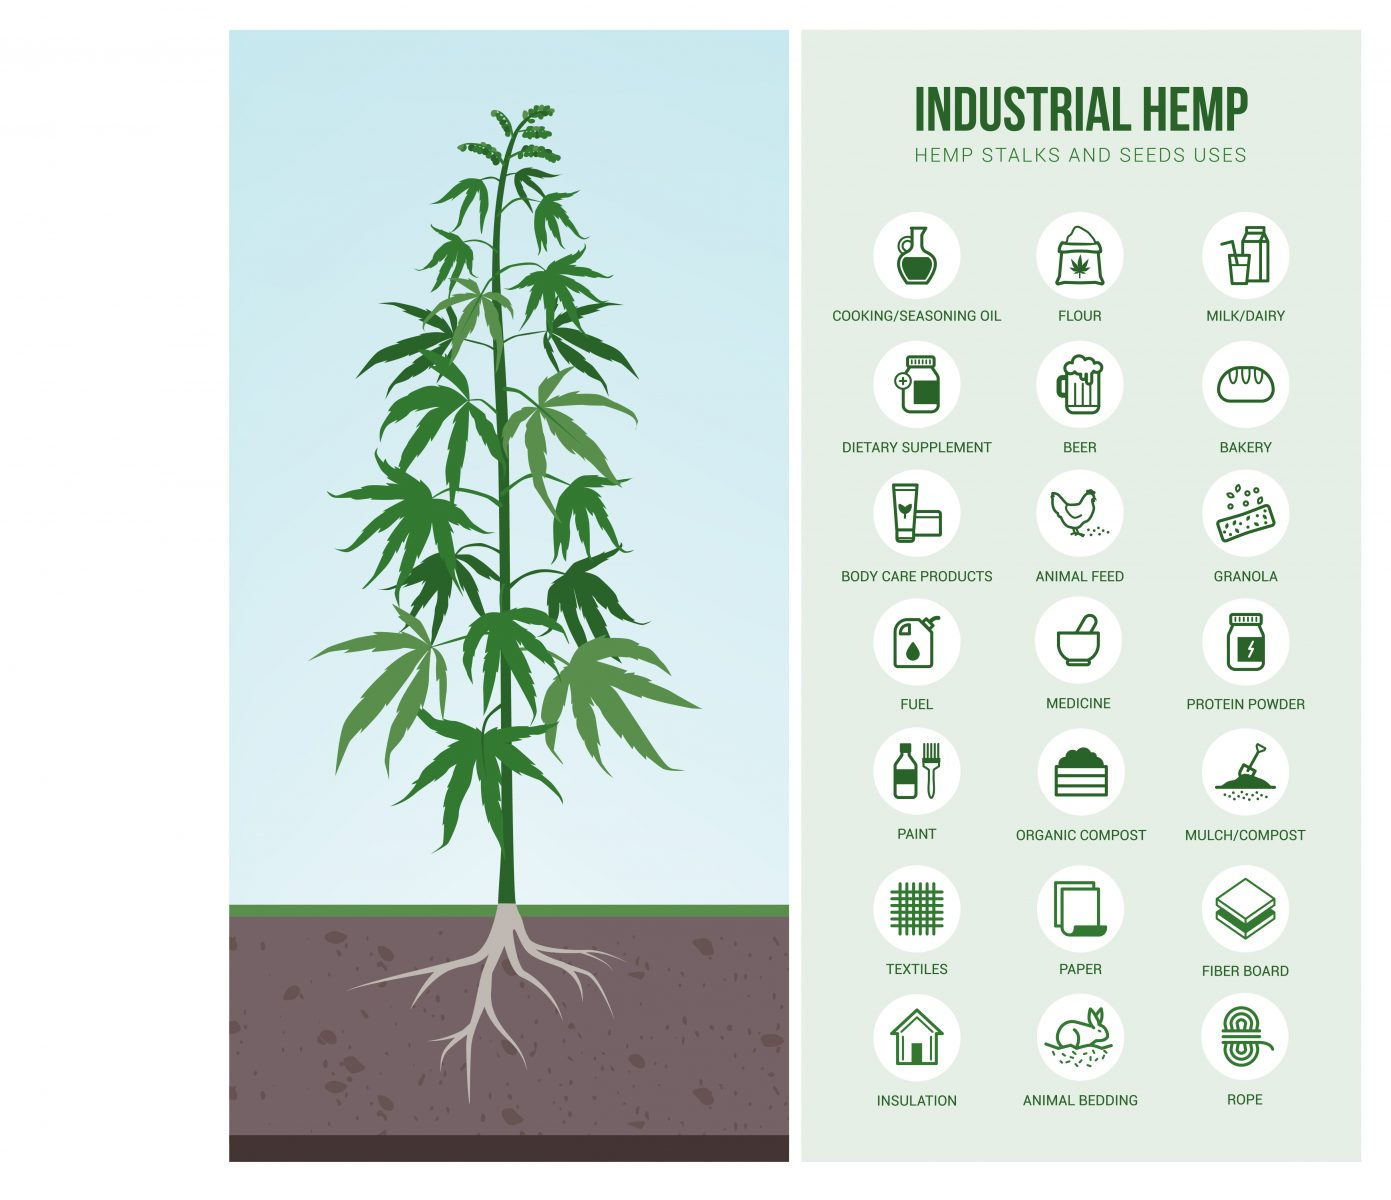 The many uses of industrial hemp